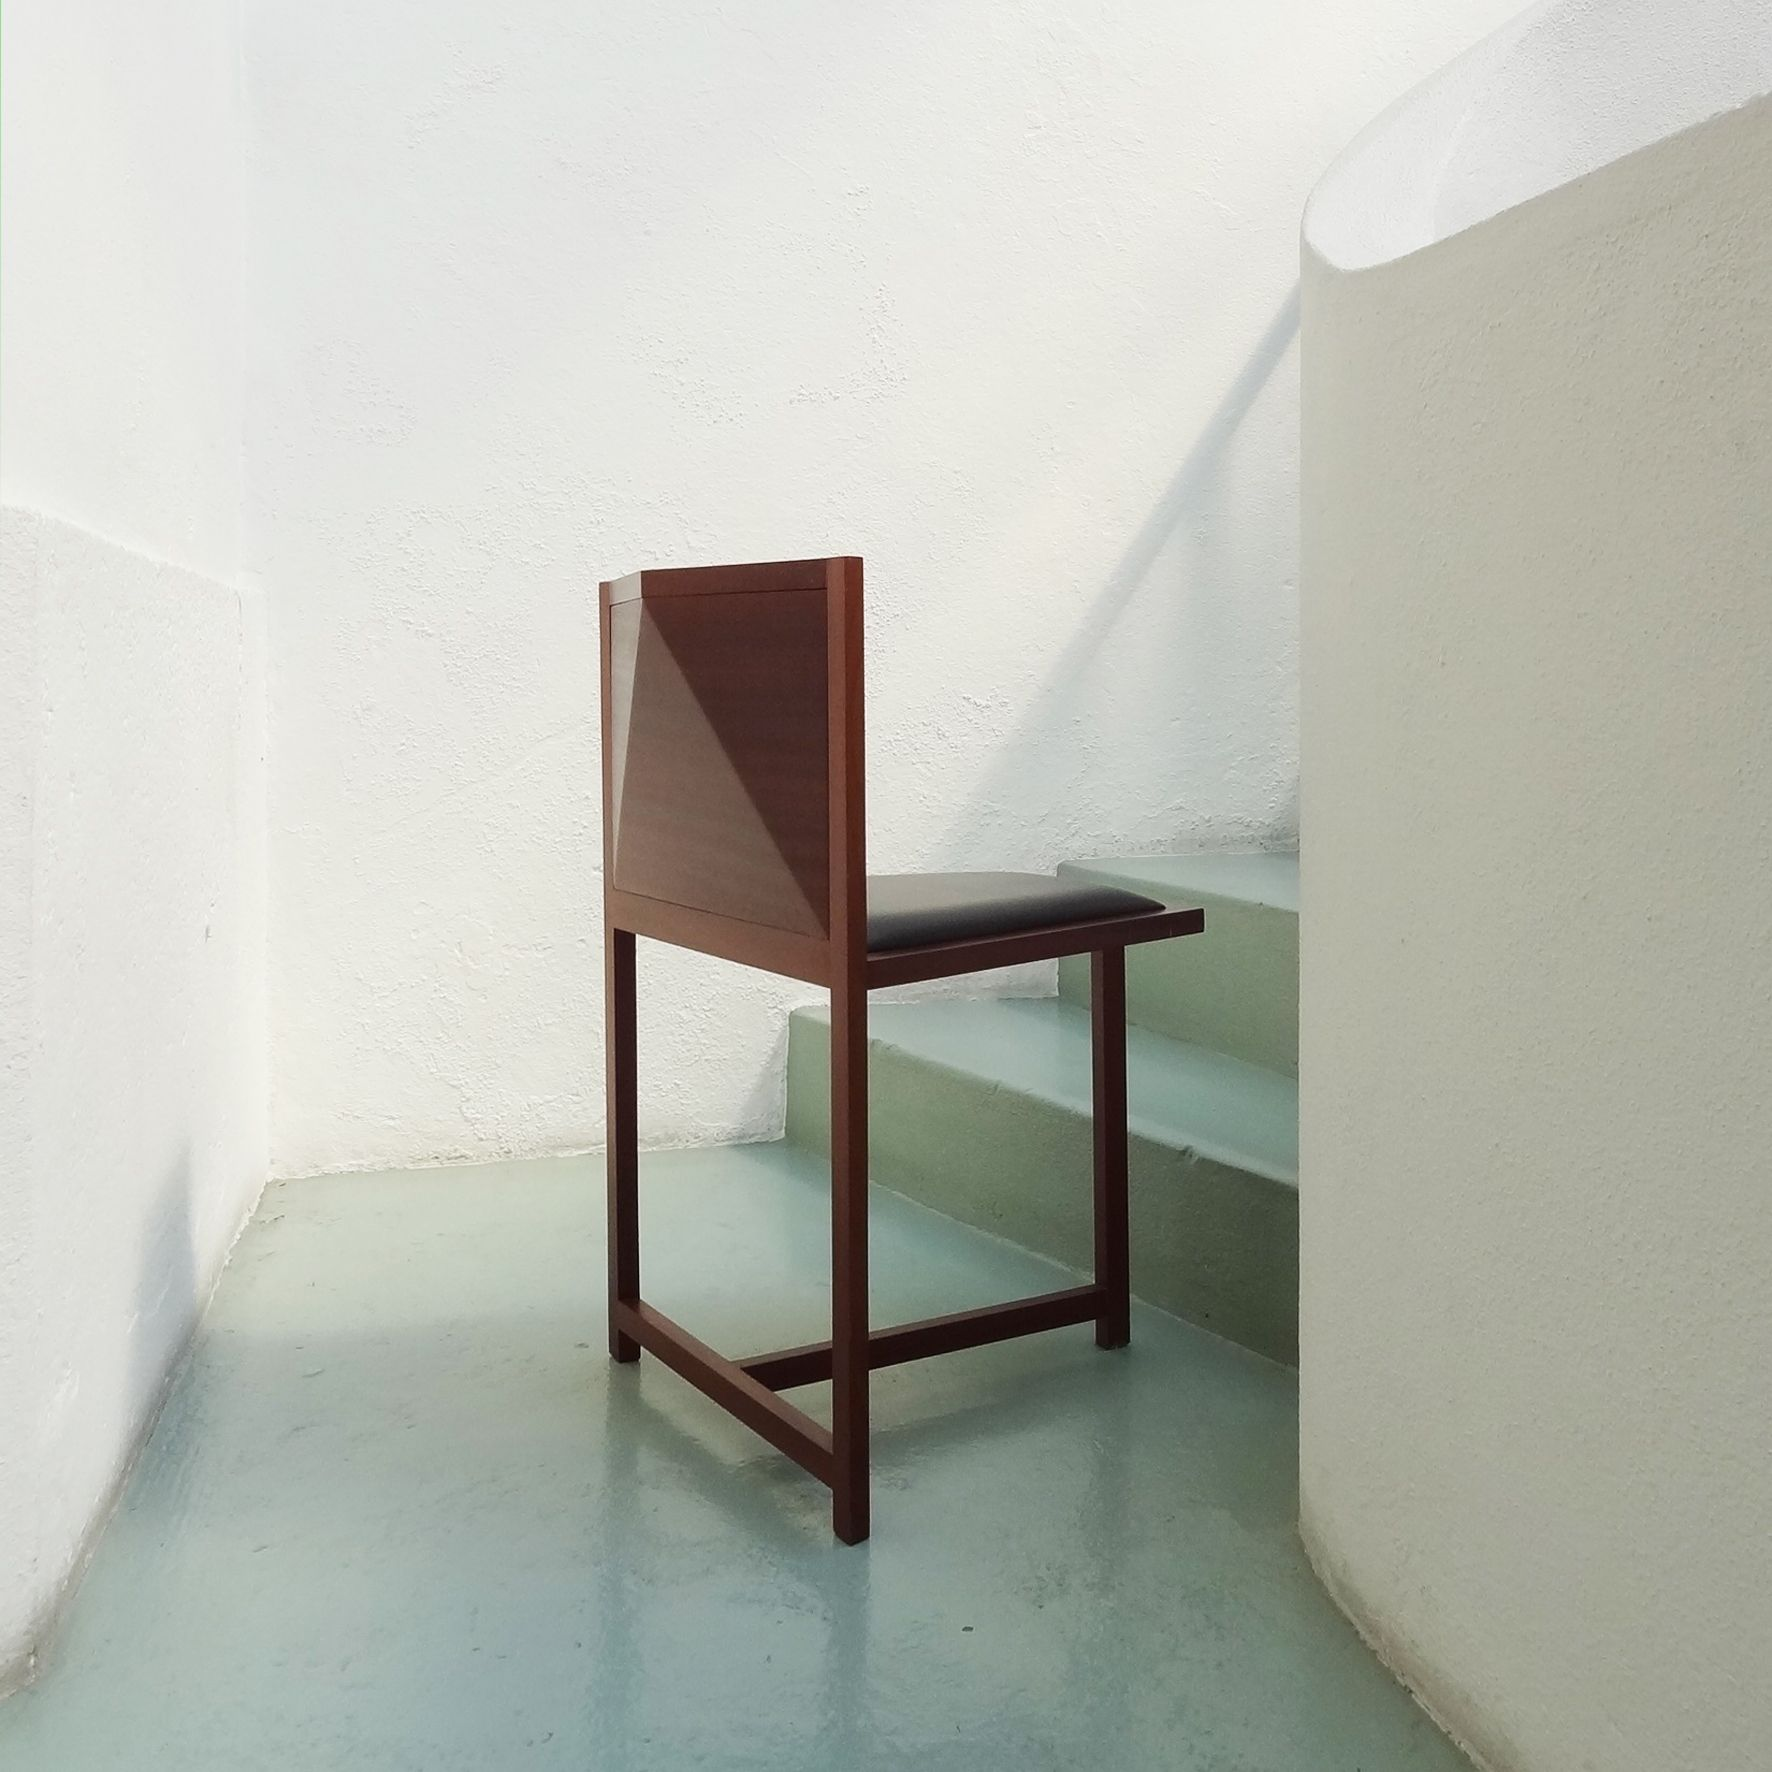 Muebles Alvaro Siza - Three Legged Chair By Lvaro Siza Mobiliario Pinterest[mjhdah]http://photos1.blogger.com/img/133/6247/1024/AS-d.jpg